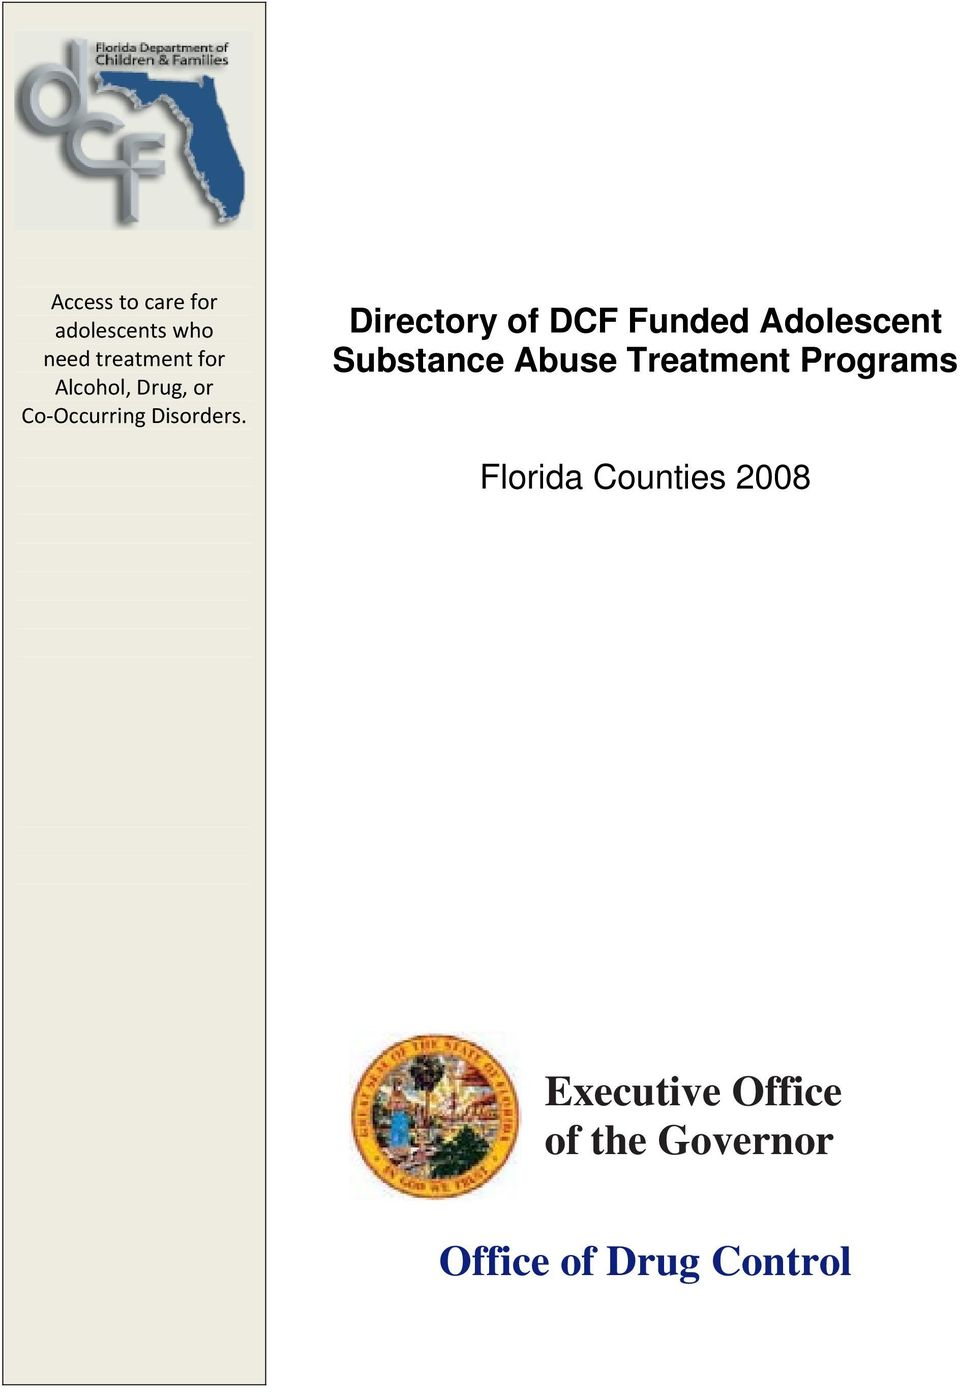 Directory of DCF Funded Adolescent Substance Abuse Treatment